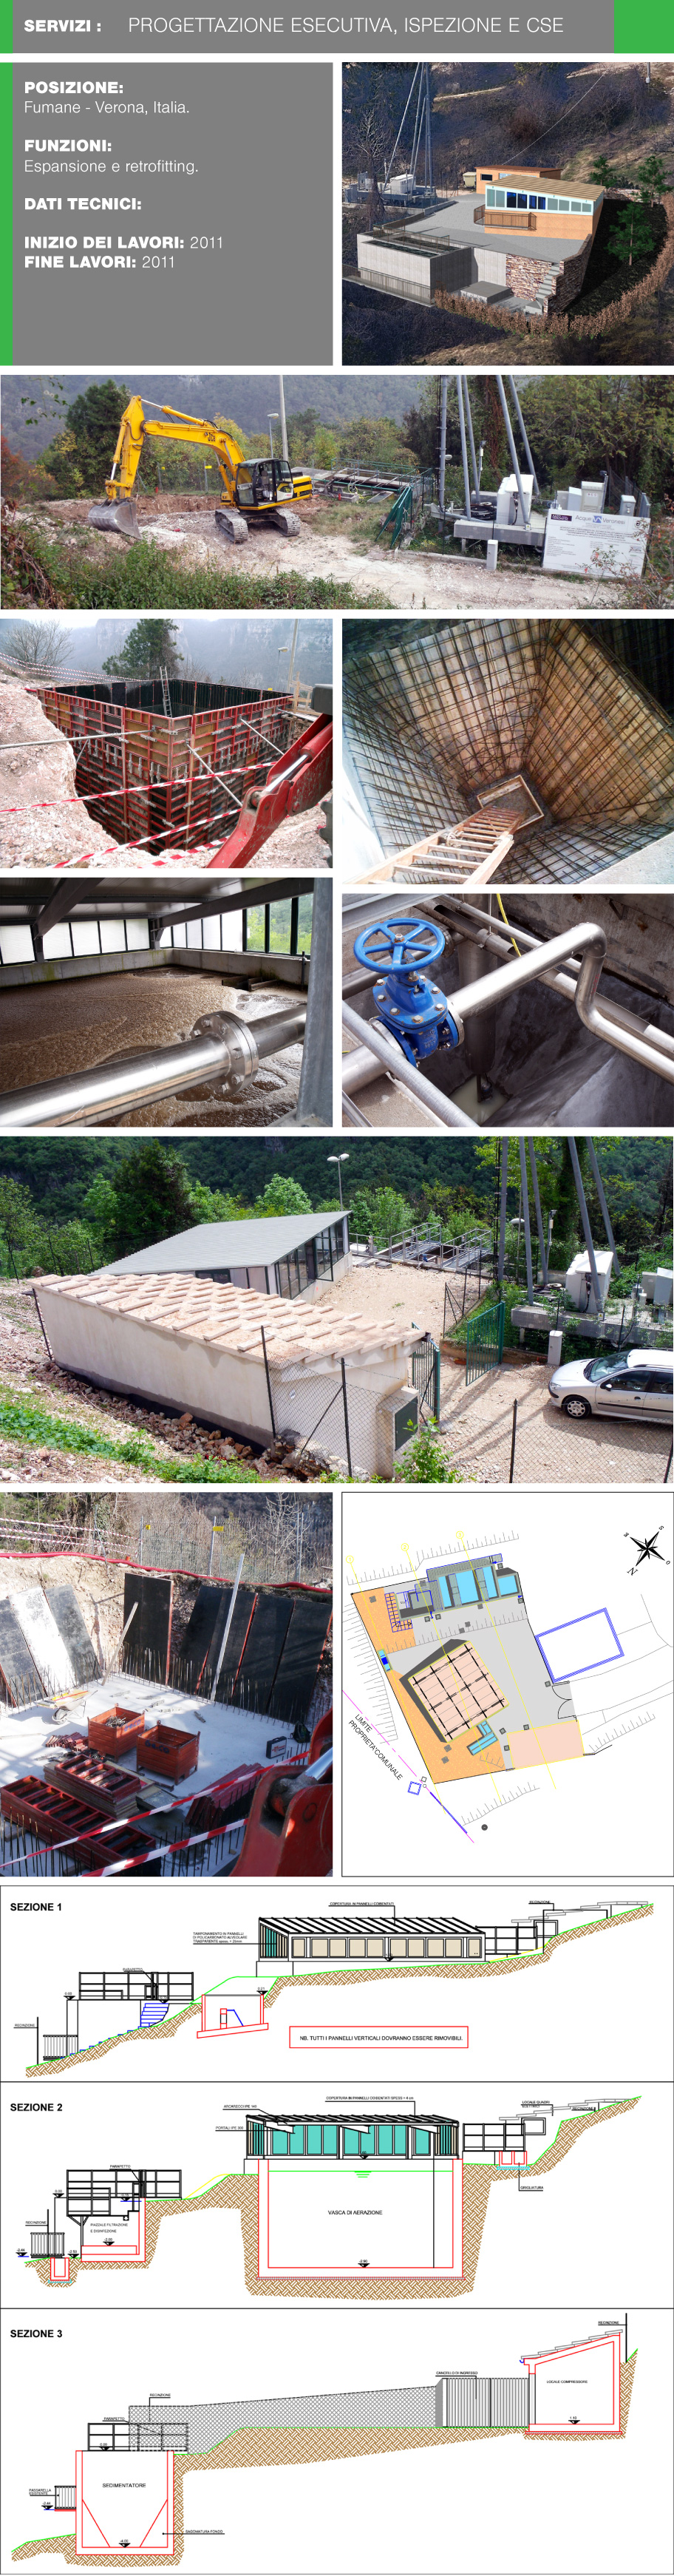 Wastewater_treatment_molina_ita